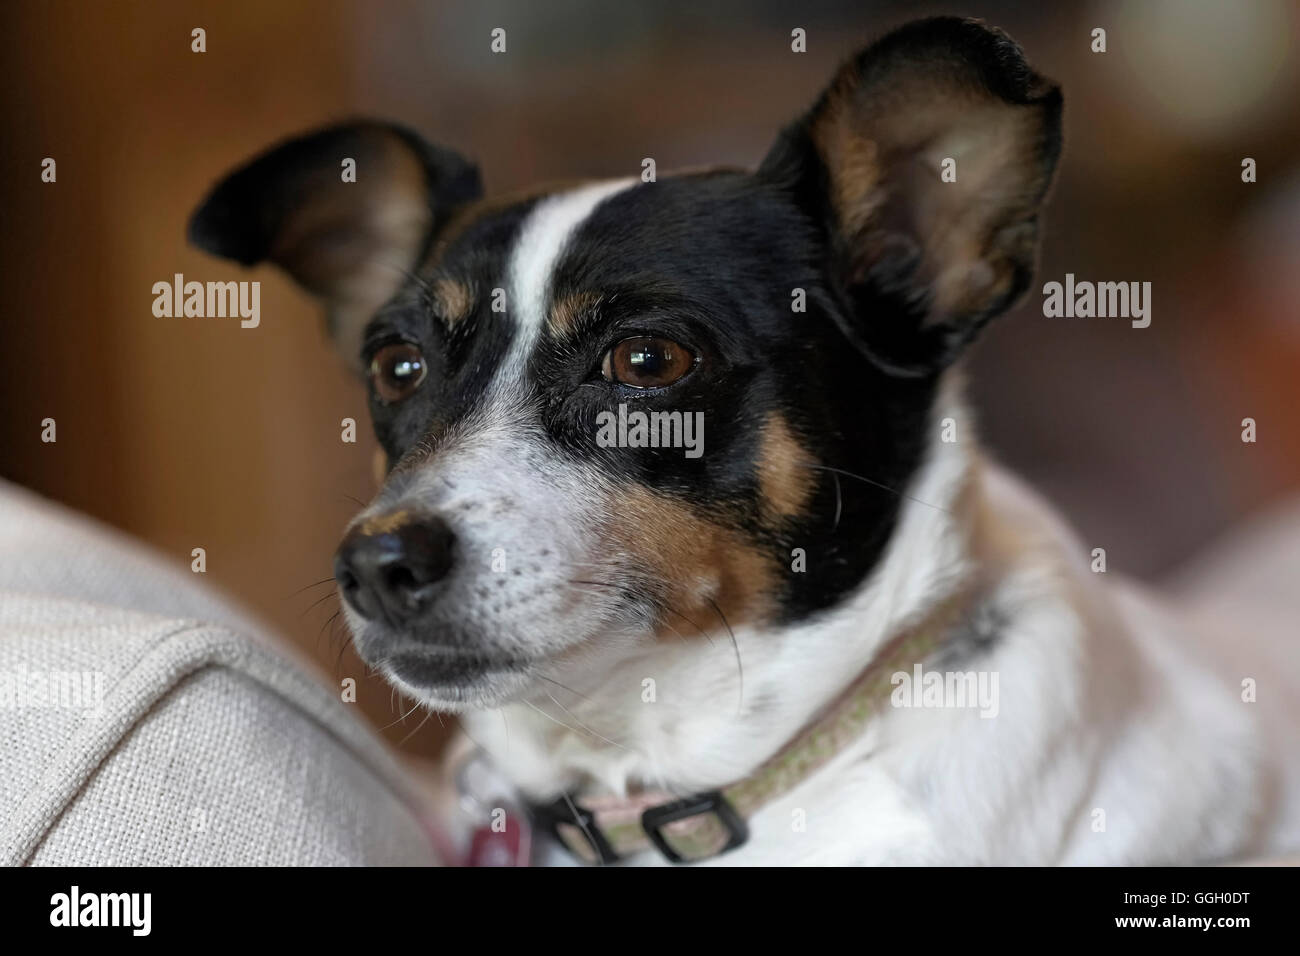 Rat Terrier dog on sofa looking out window. Black and white dog. - Stock Image